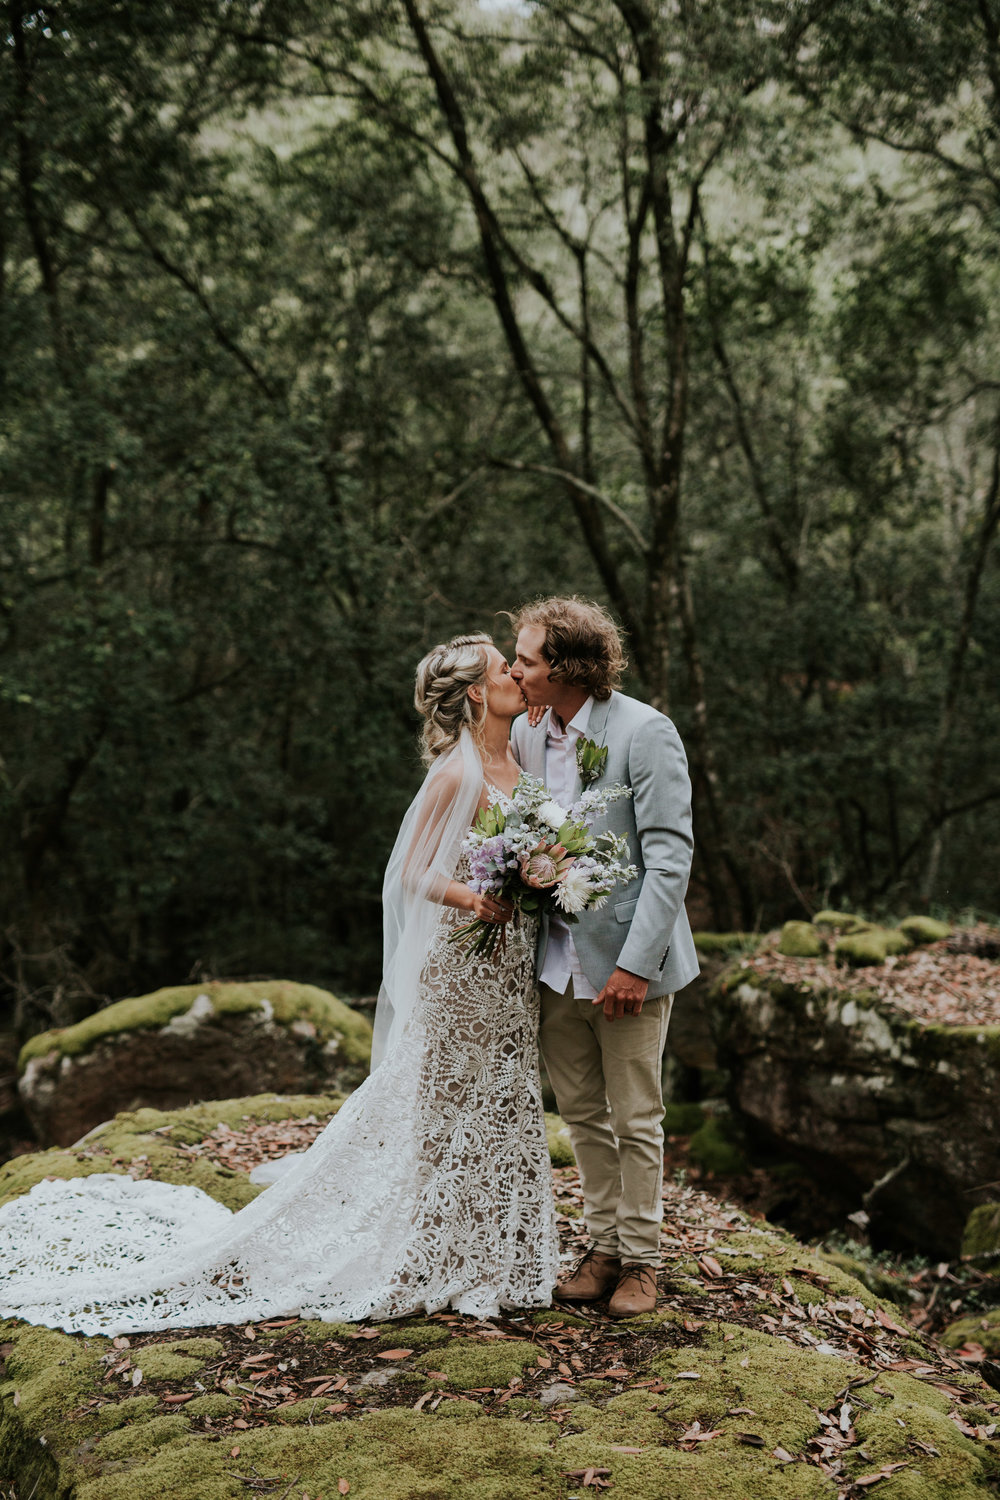 Jesse+Matt+Kangaroo+Valley+Wildwood+Boho+Relaxed+wedding+-140.jpg